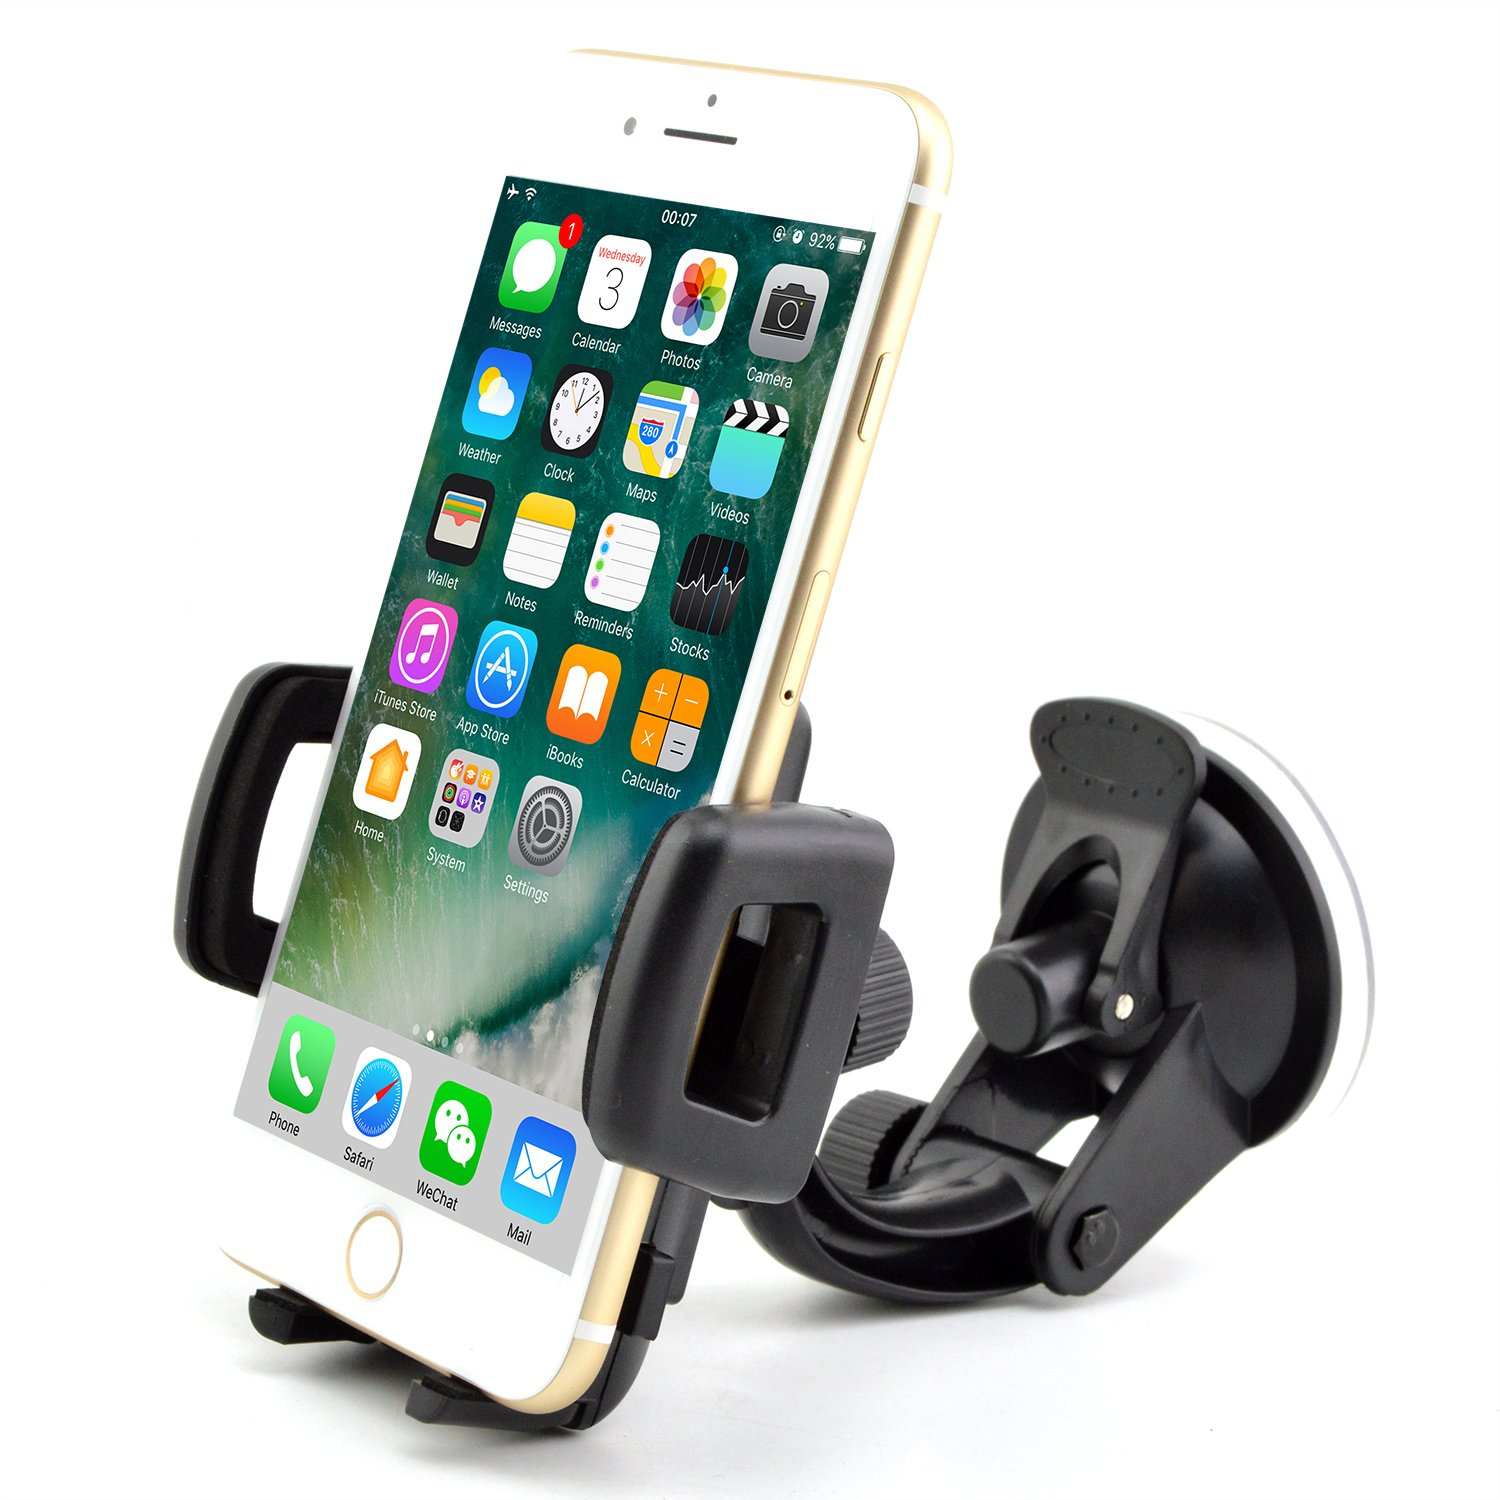 in Car Phone Holder Best Universal in Car One Touch in Car Holder  Windscreen Cradle for iPhone 7 / 6s / 6 / 5s / 5c / 4S / 4 / 3GS Samsung  Galaxy Note